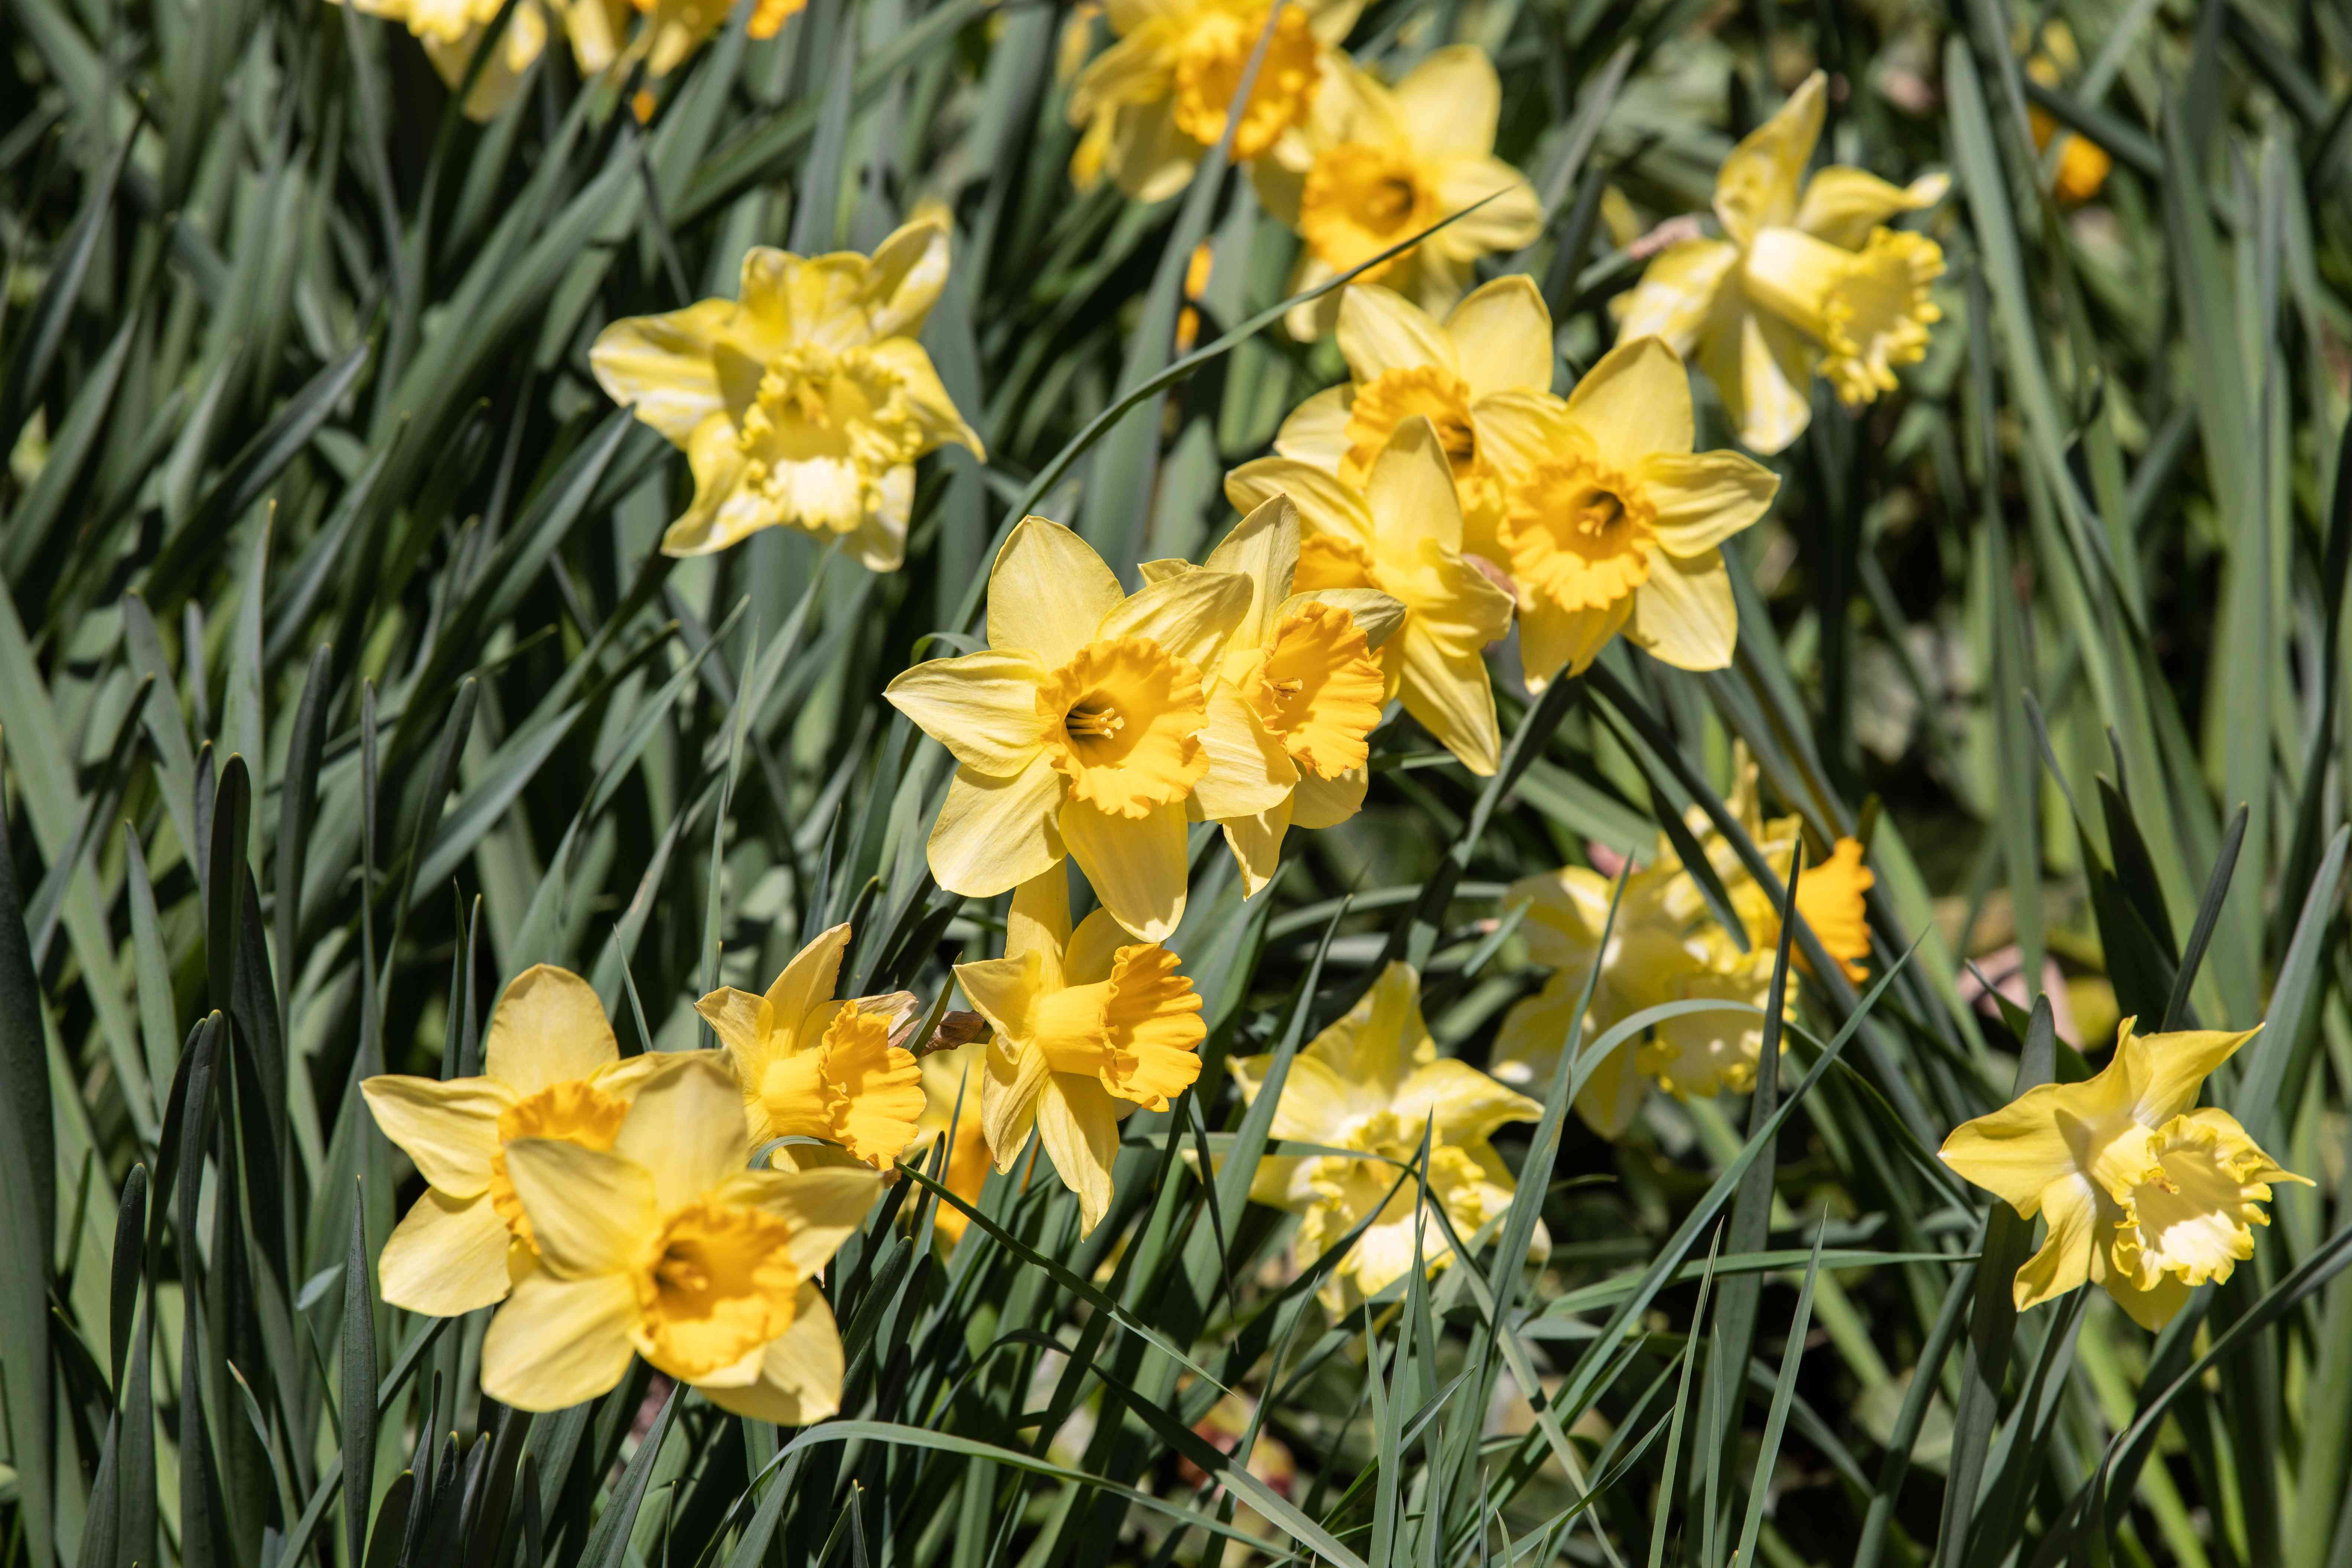 Spring bulb with yellow daffodil flowers surrounded by blade-like leaves in sunlight